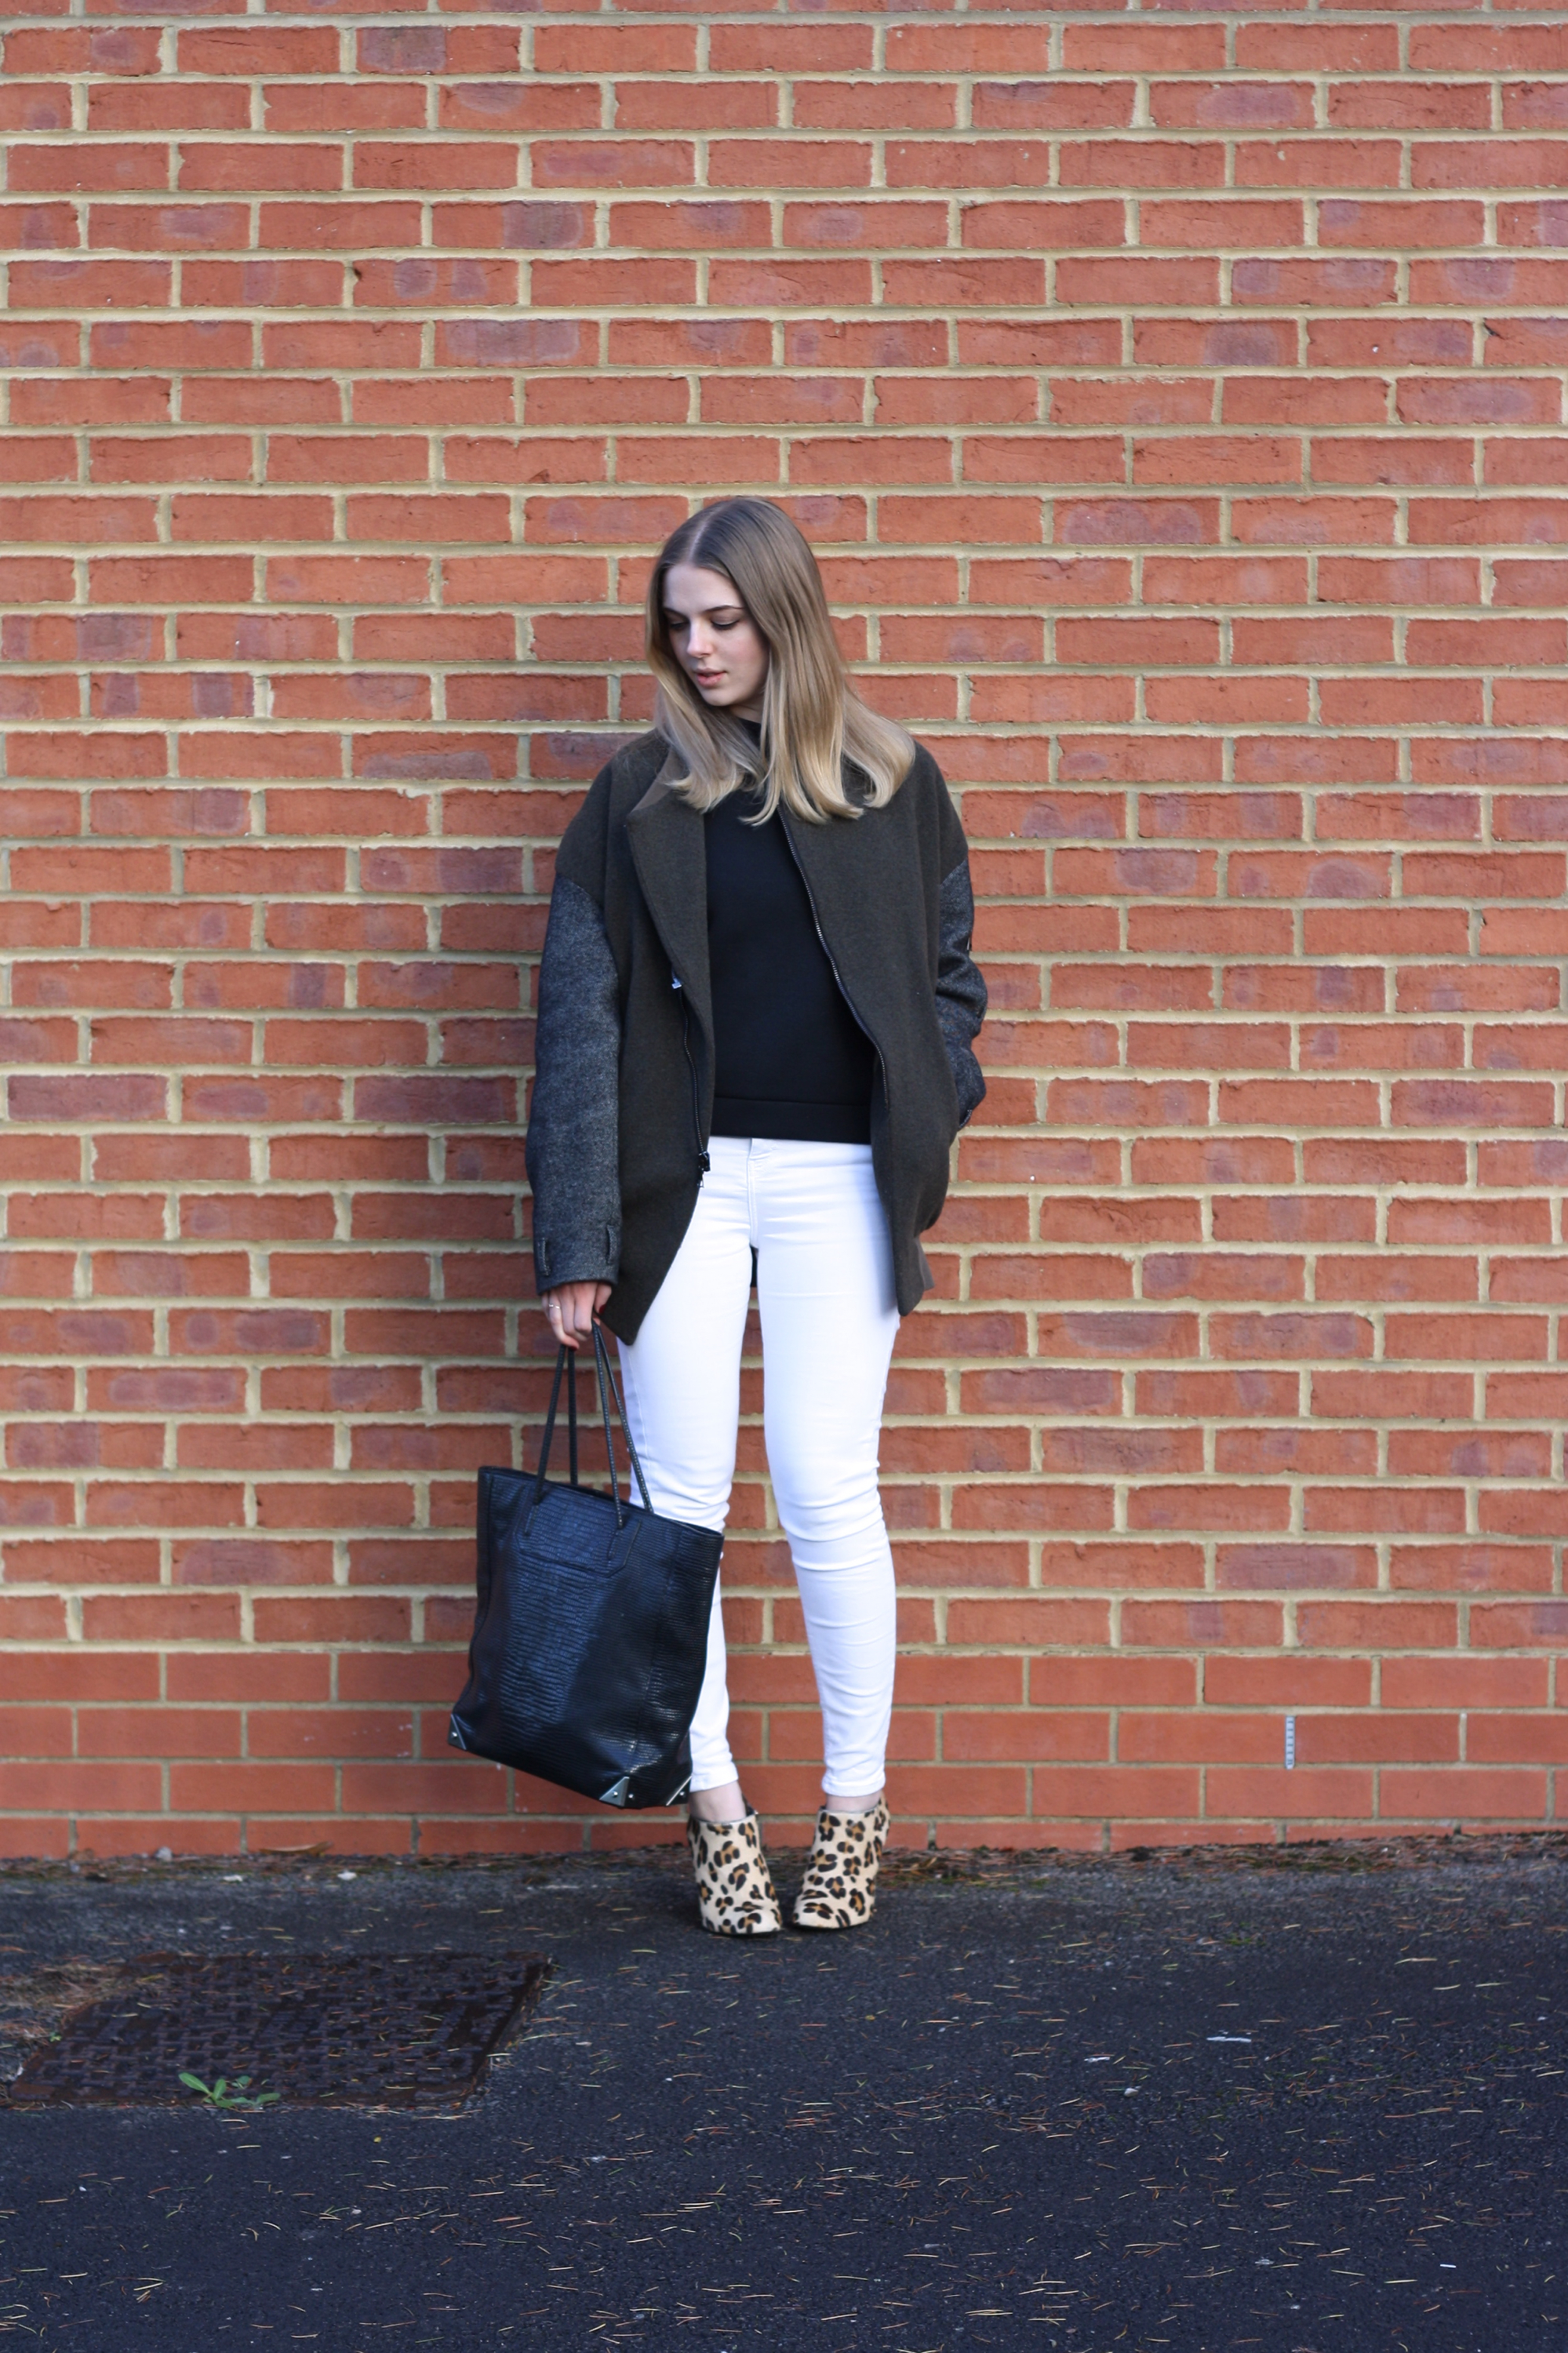 Topshop white skinny jeans, Zara leopard boots and Whistles neoprene sweater